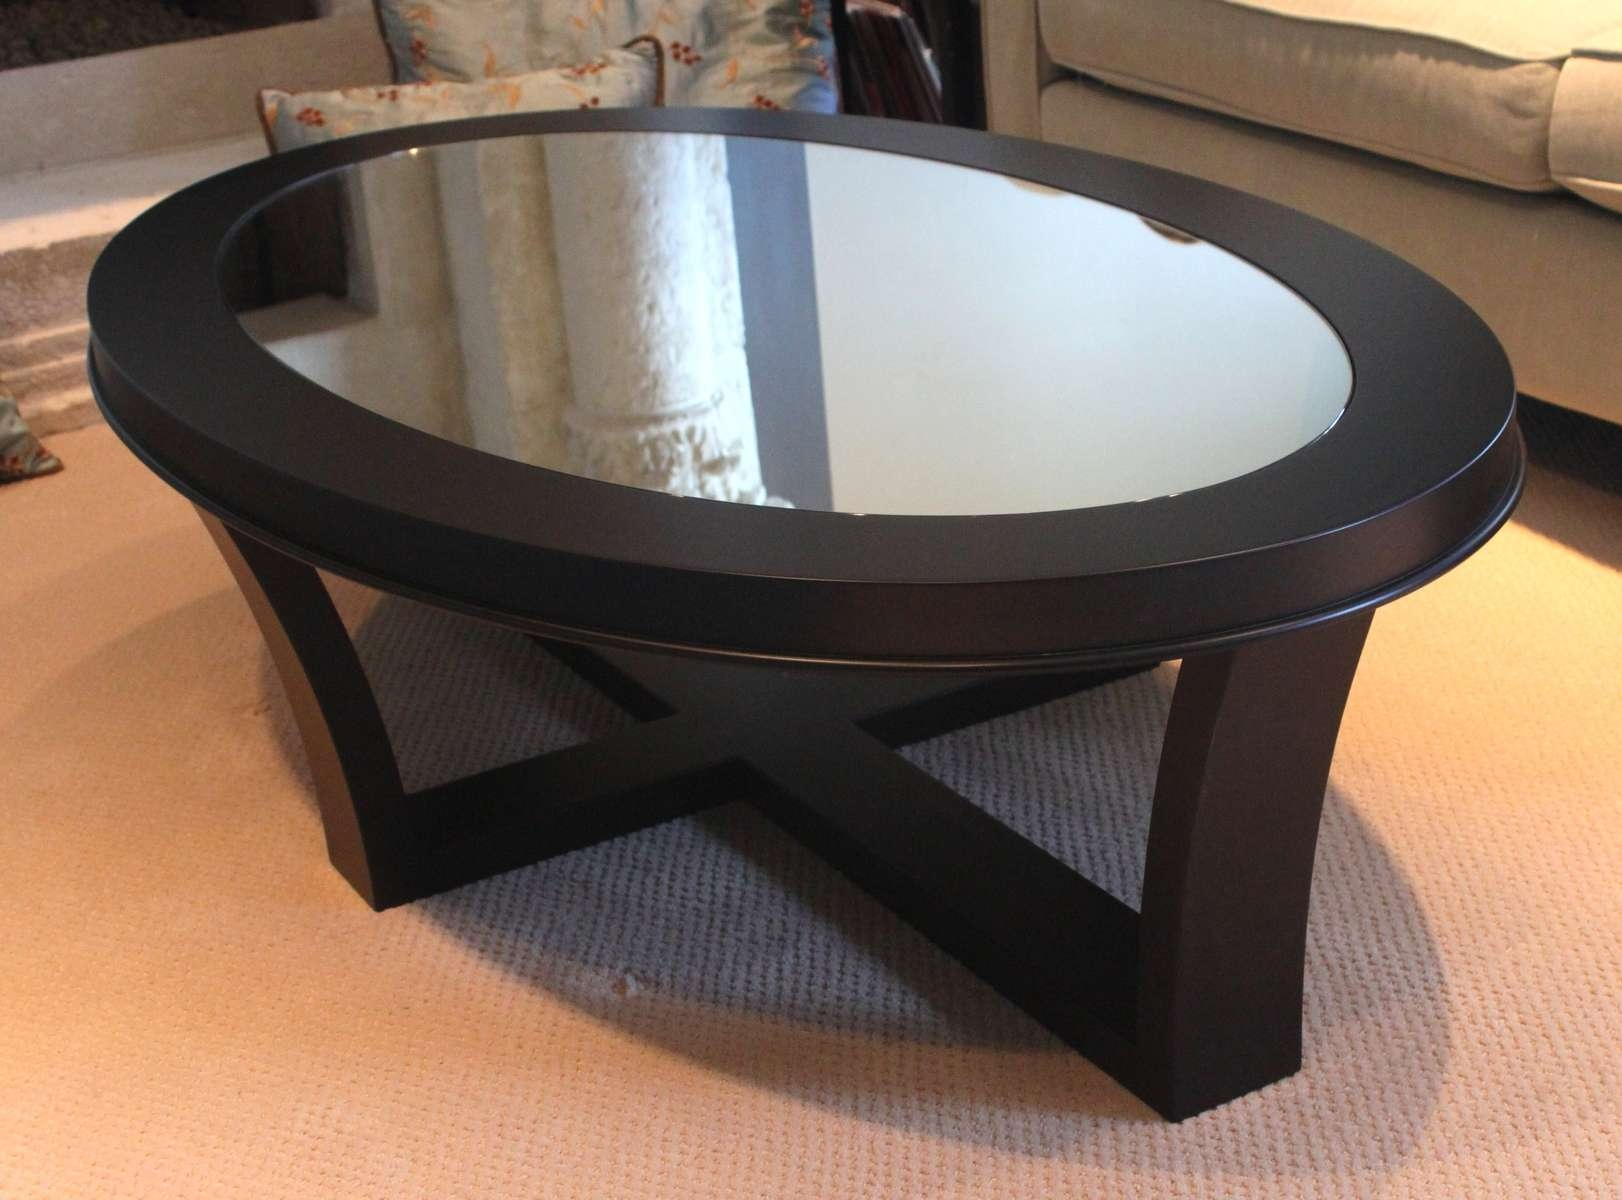 Coffee Table, Black Oval Coffee Table Oval Coffee Table Glass Top Regarding Current Black Oval Coffee Table (View 4 of 20)